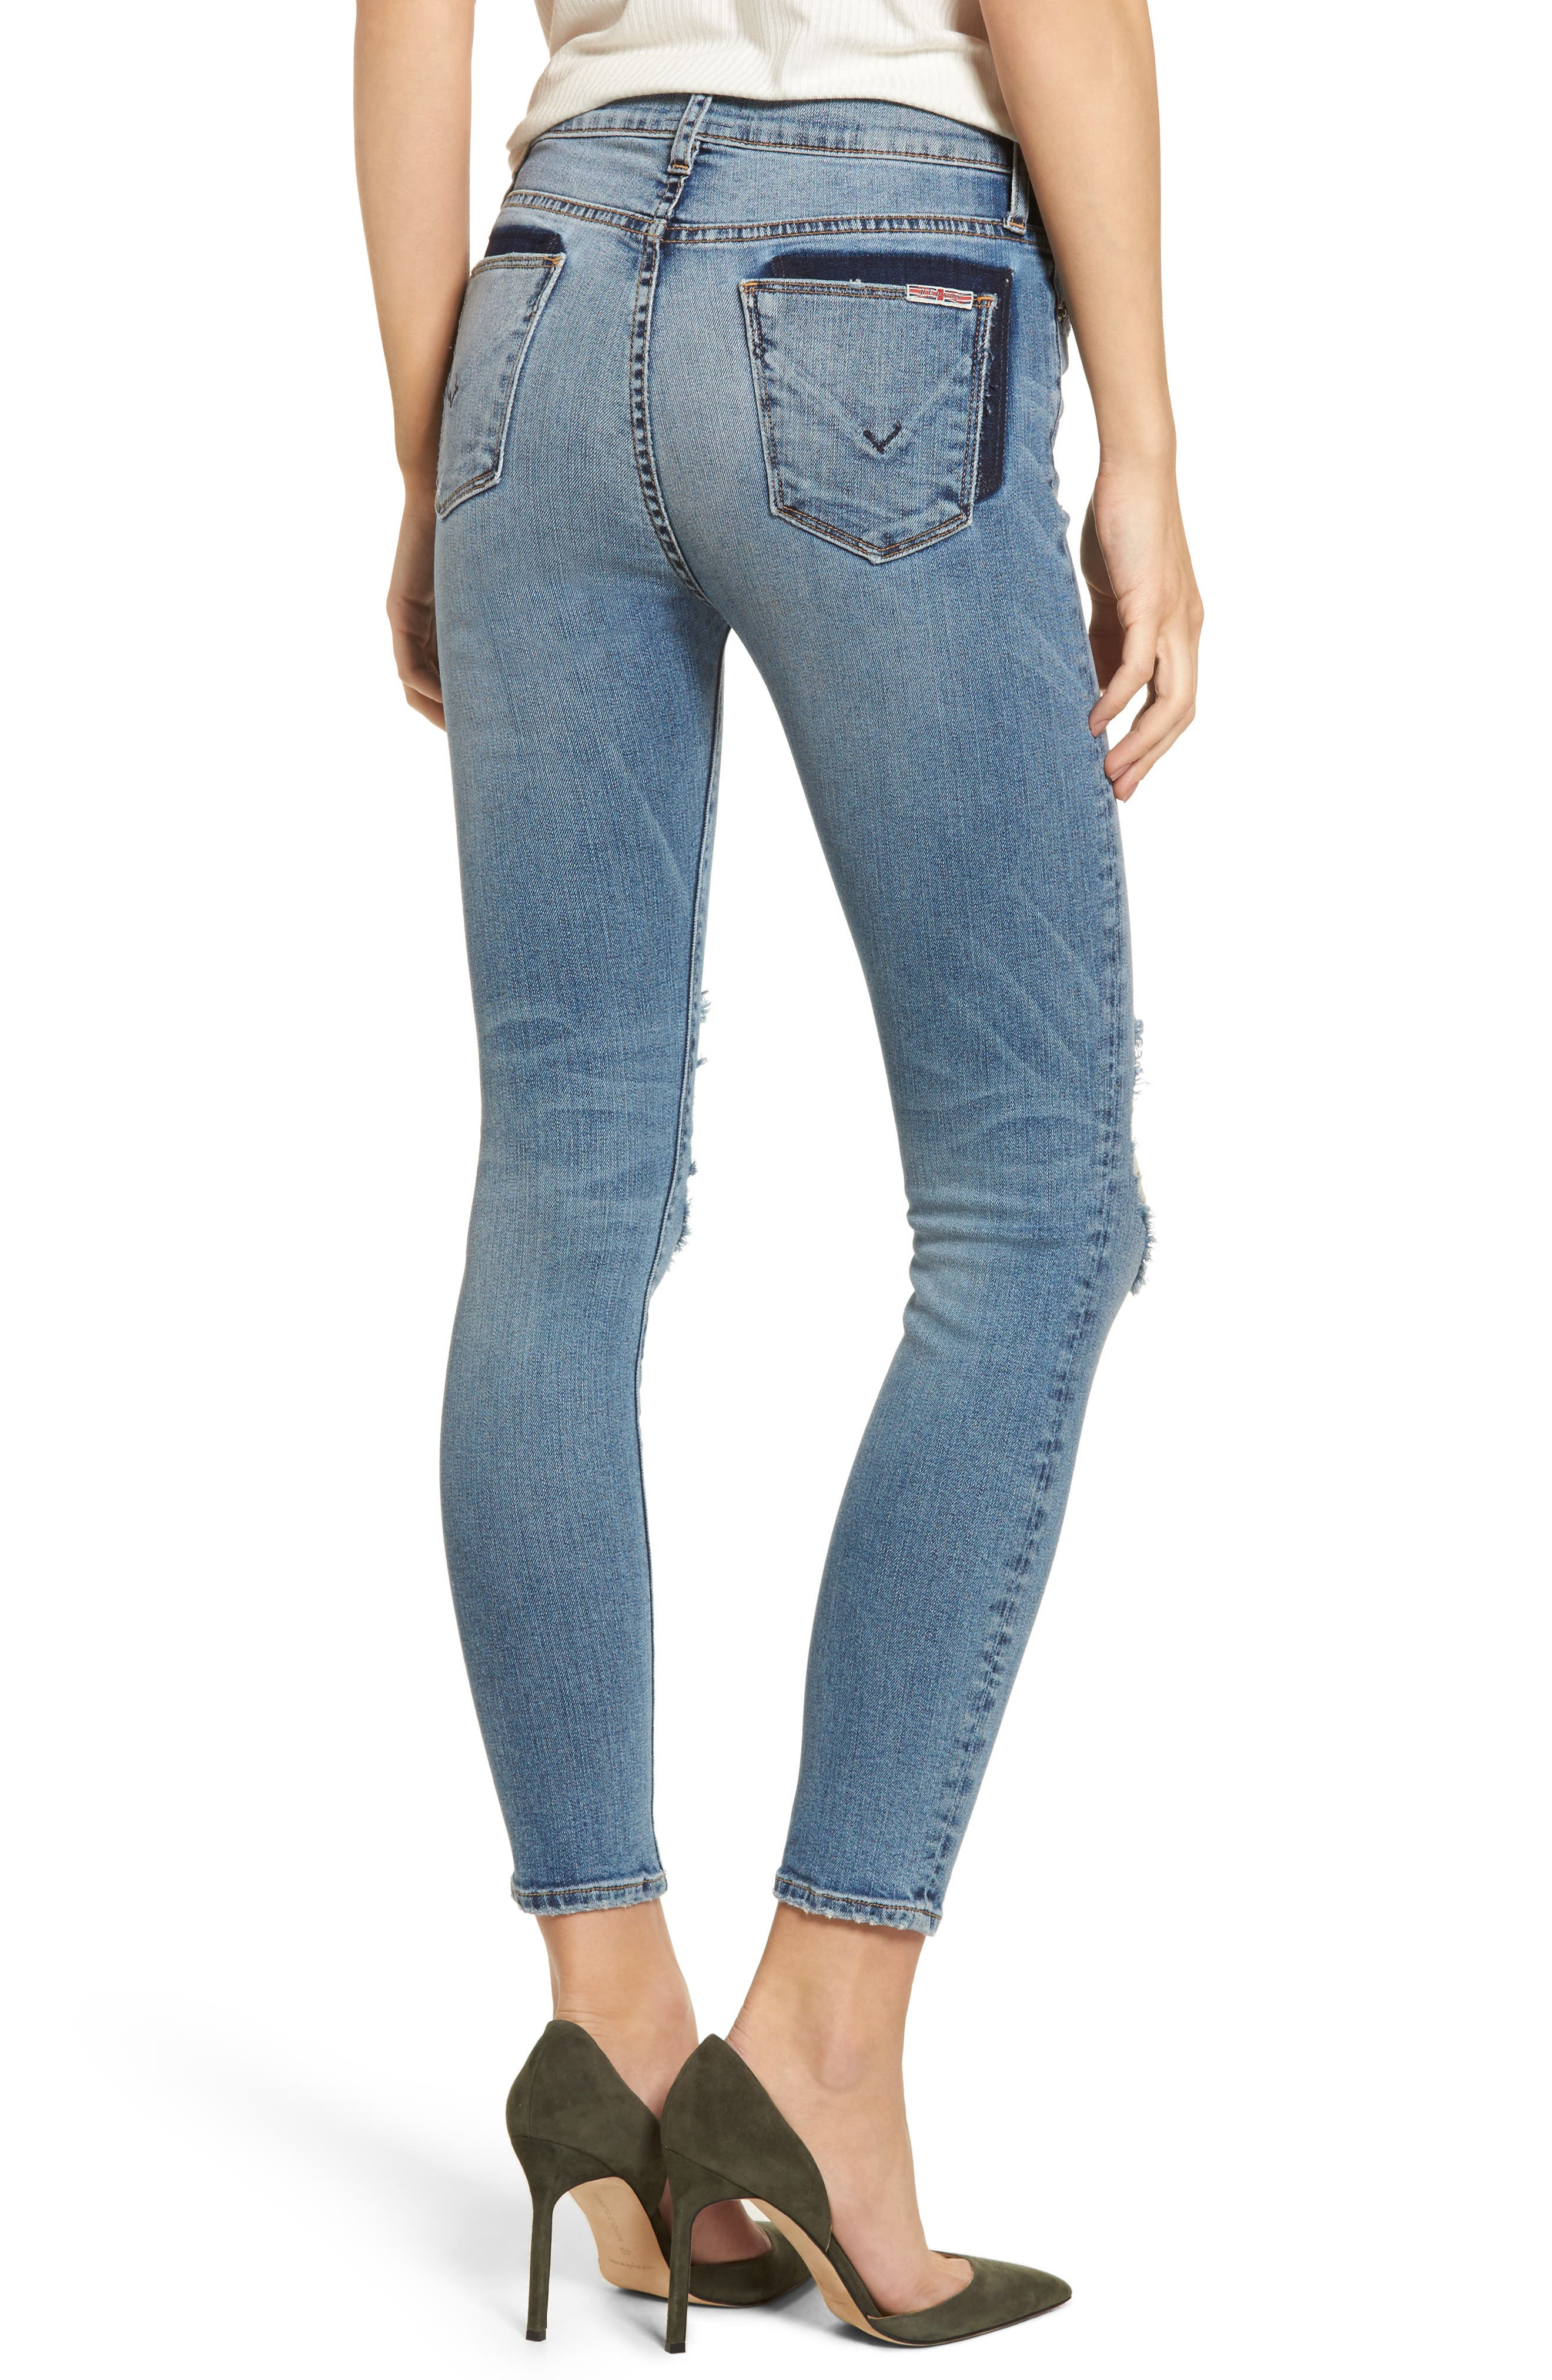 Barbara High Waist Ankle Skinny Jeans,                             Alternate thumbnail 2, color,                             Confection